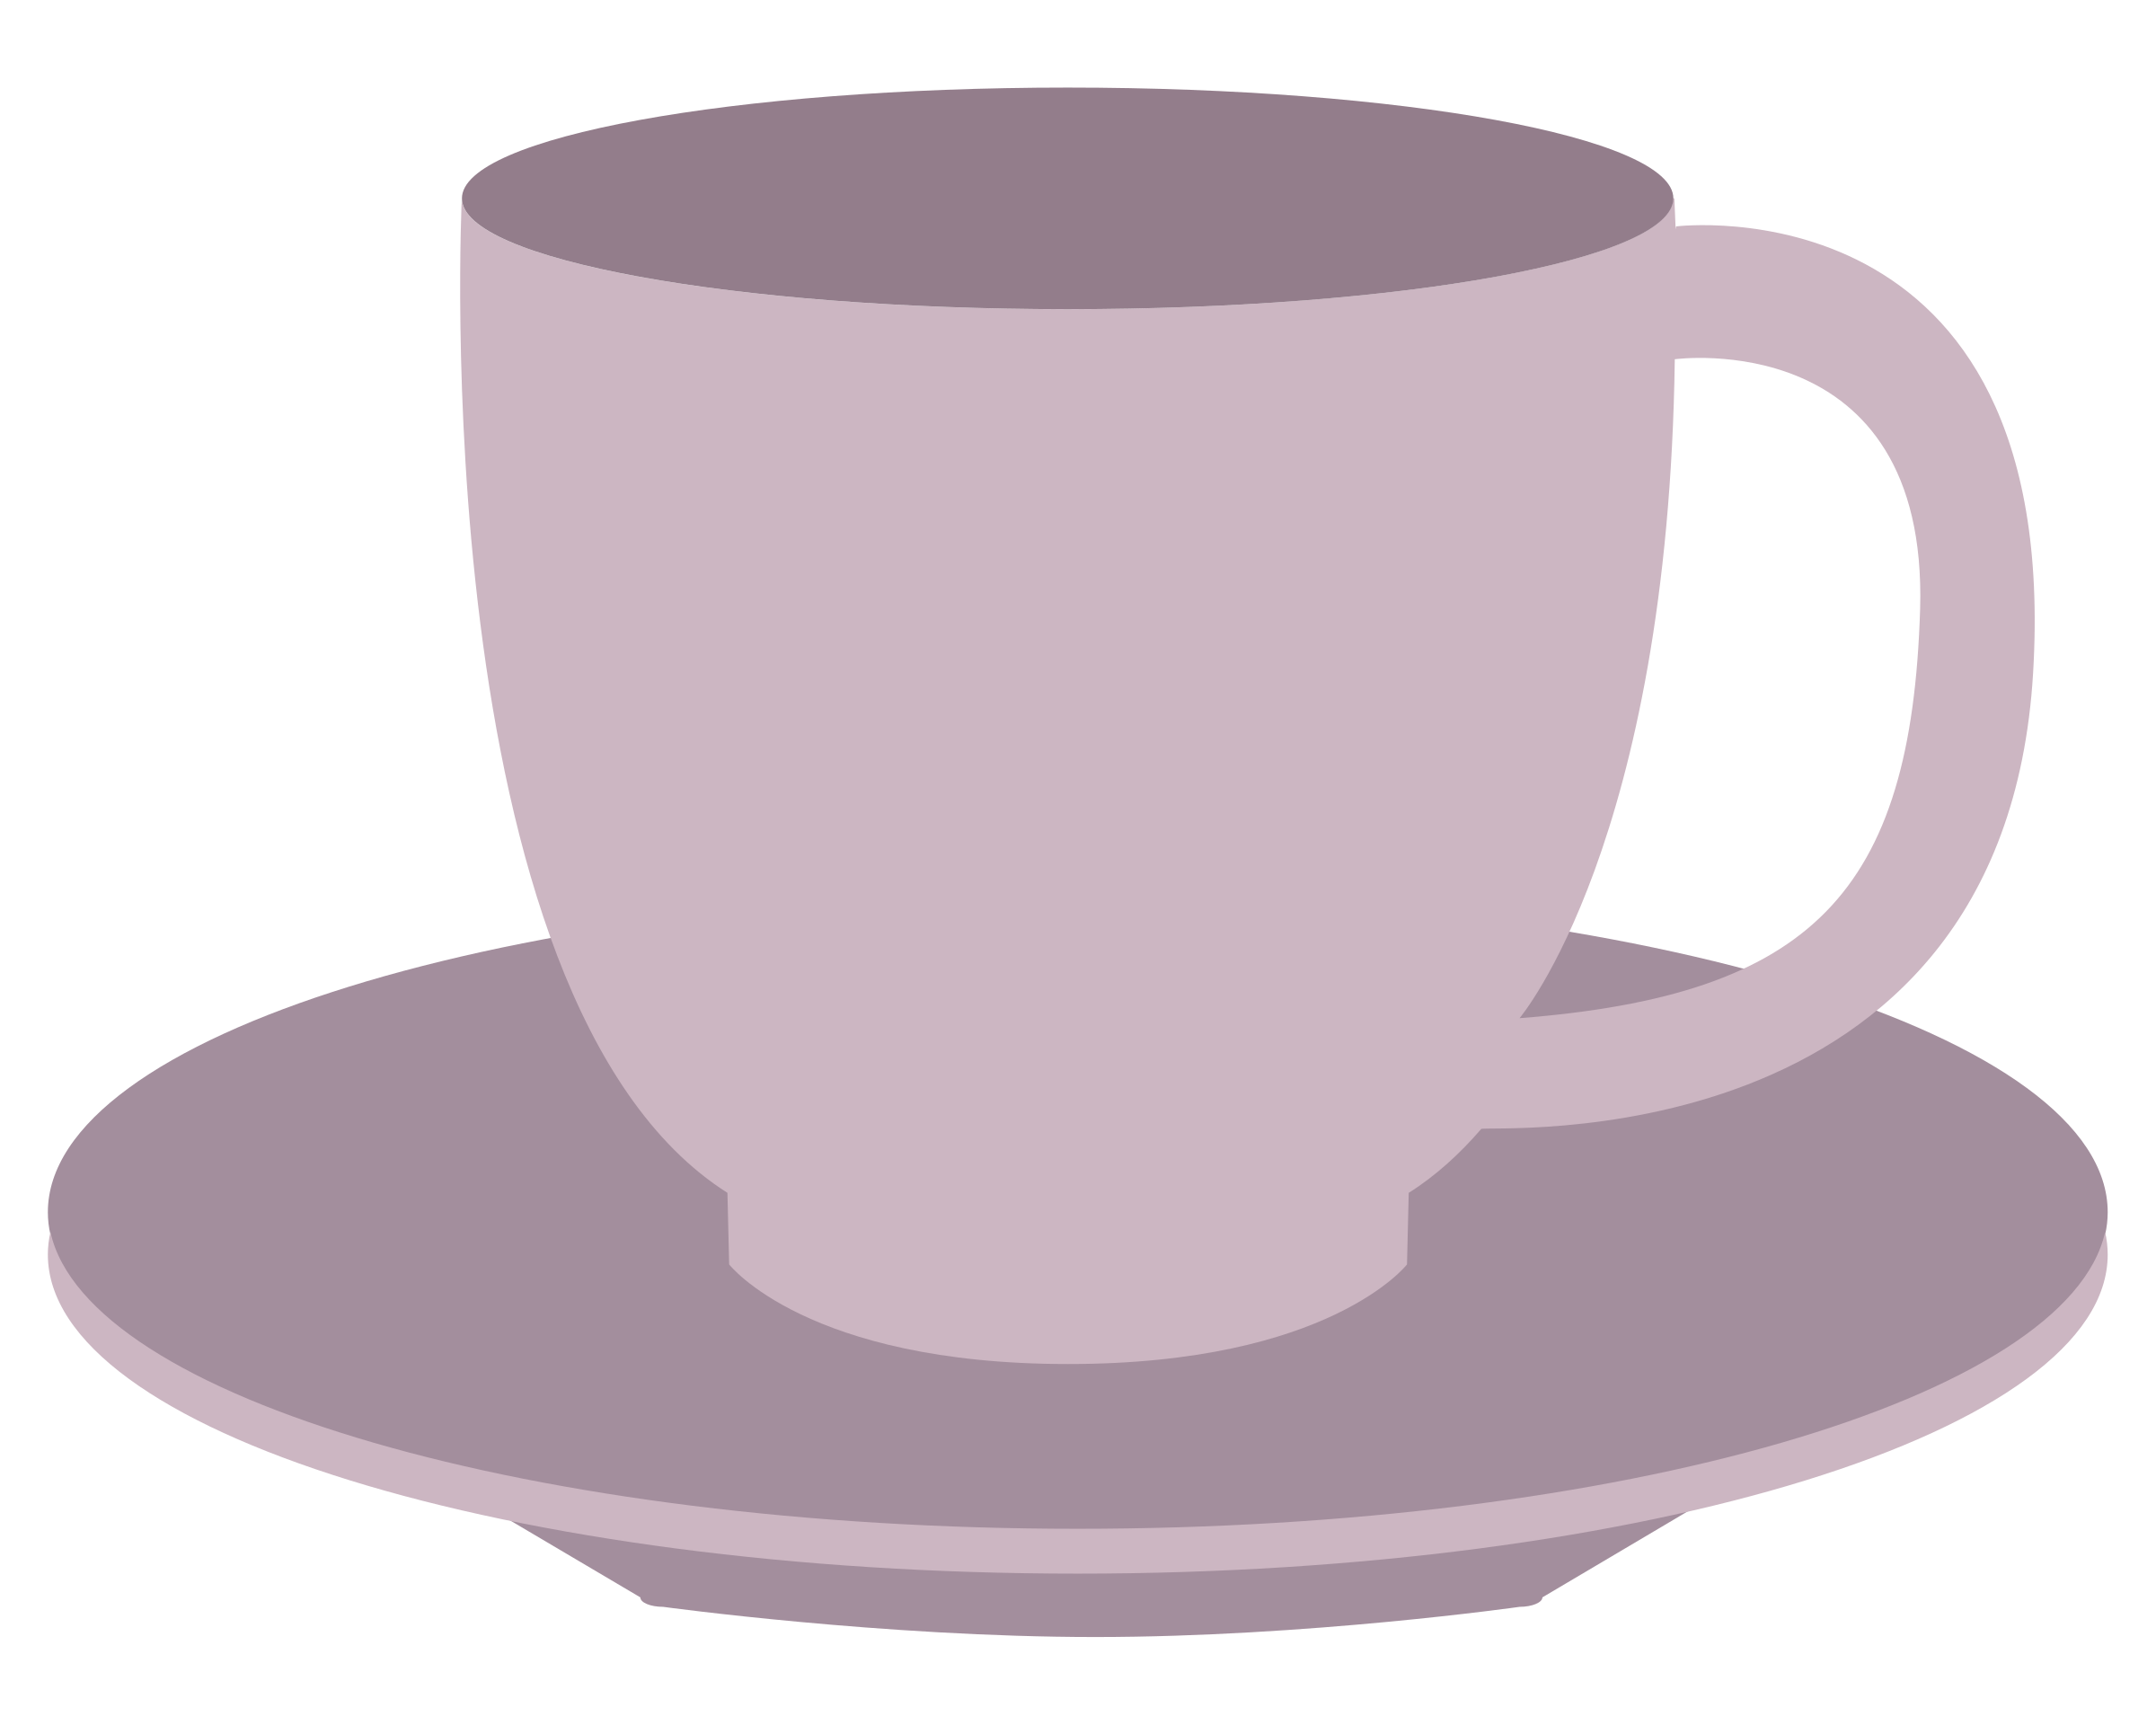 Cup clipart purple cup. Teacup and saucer big